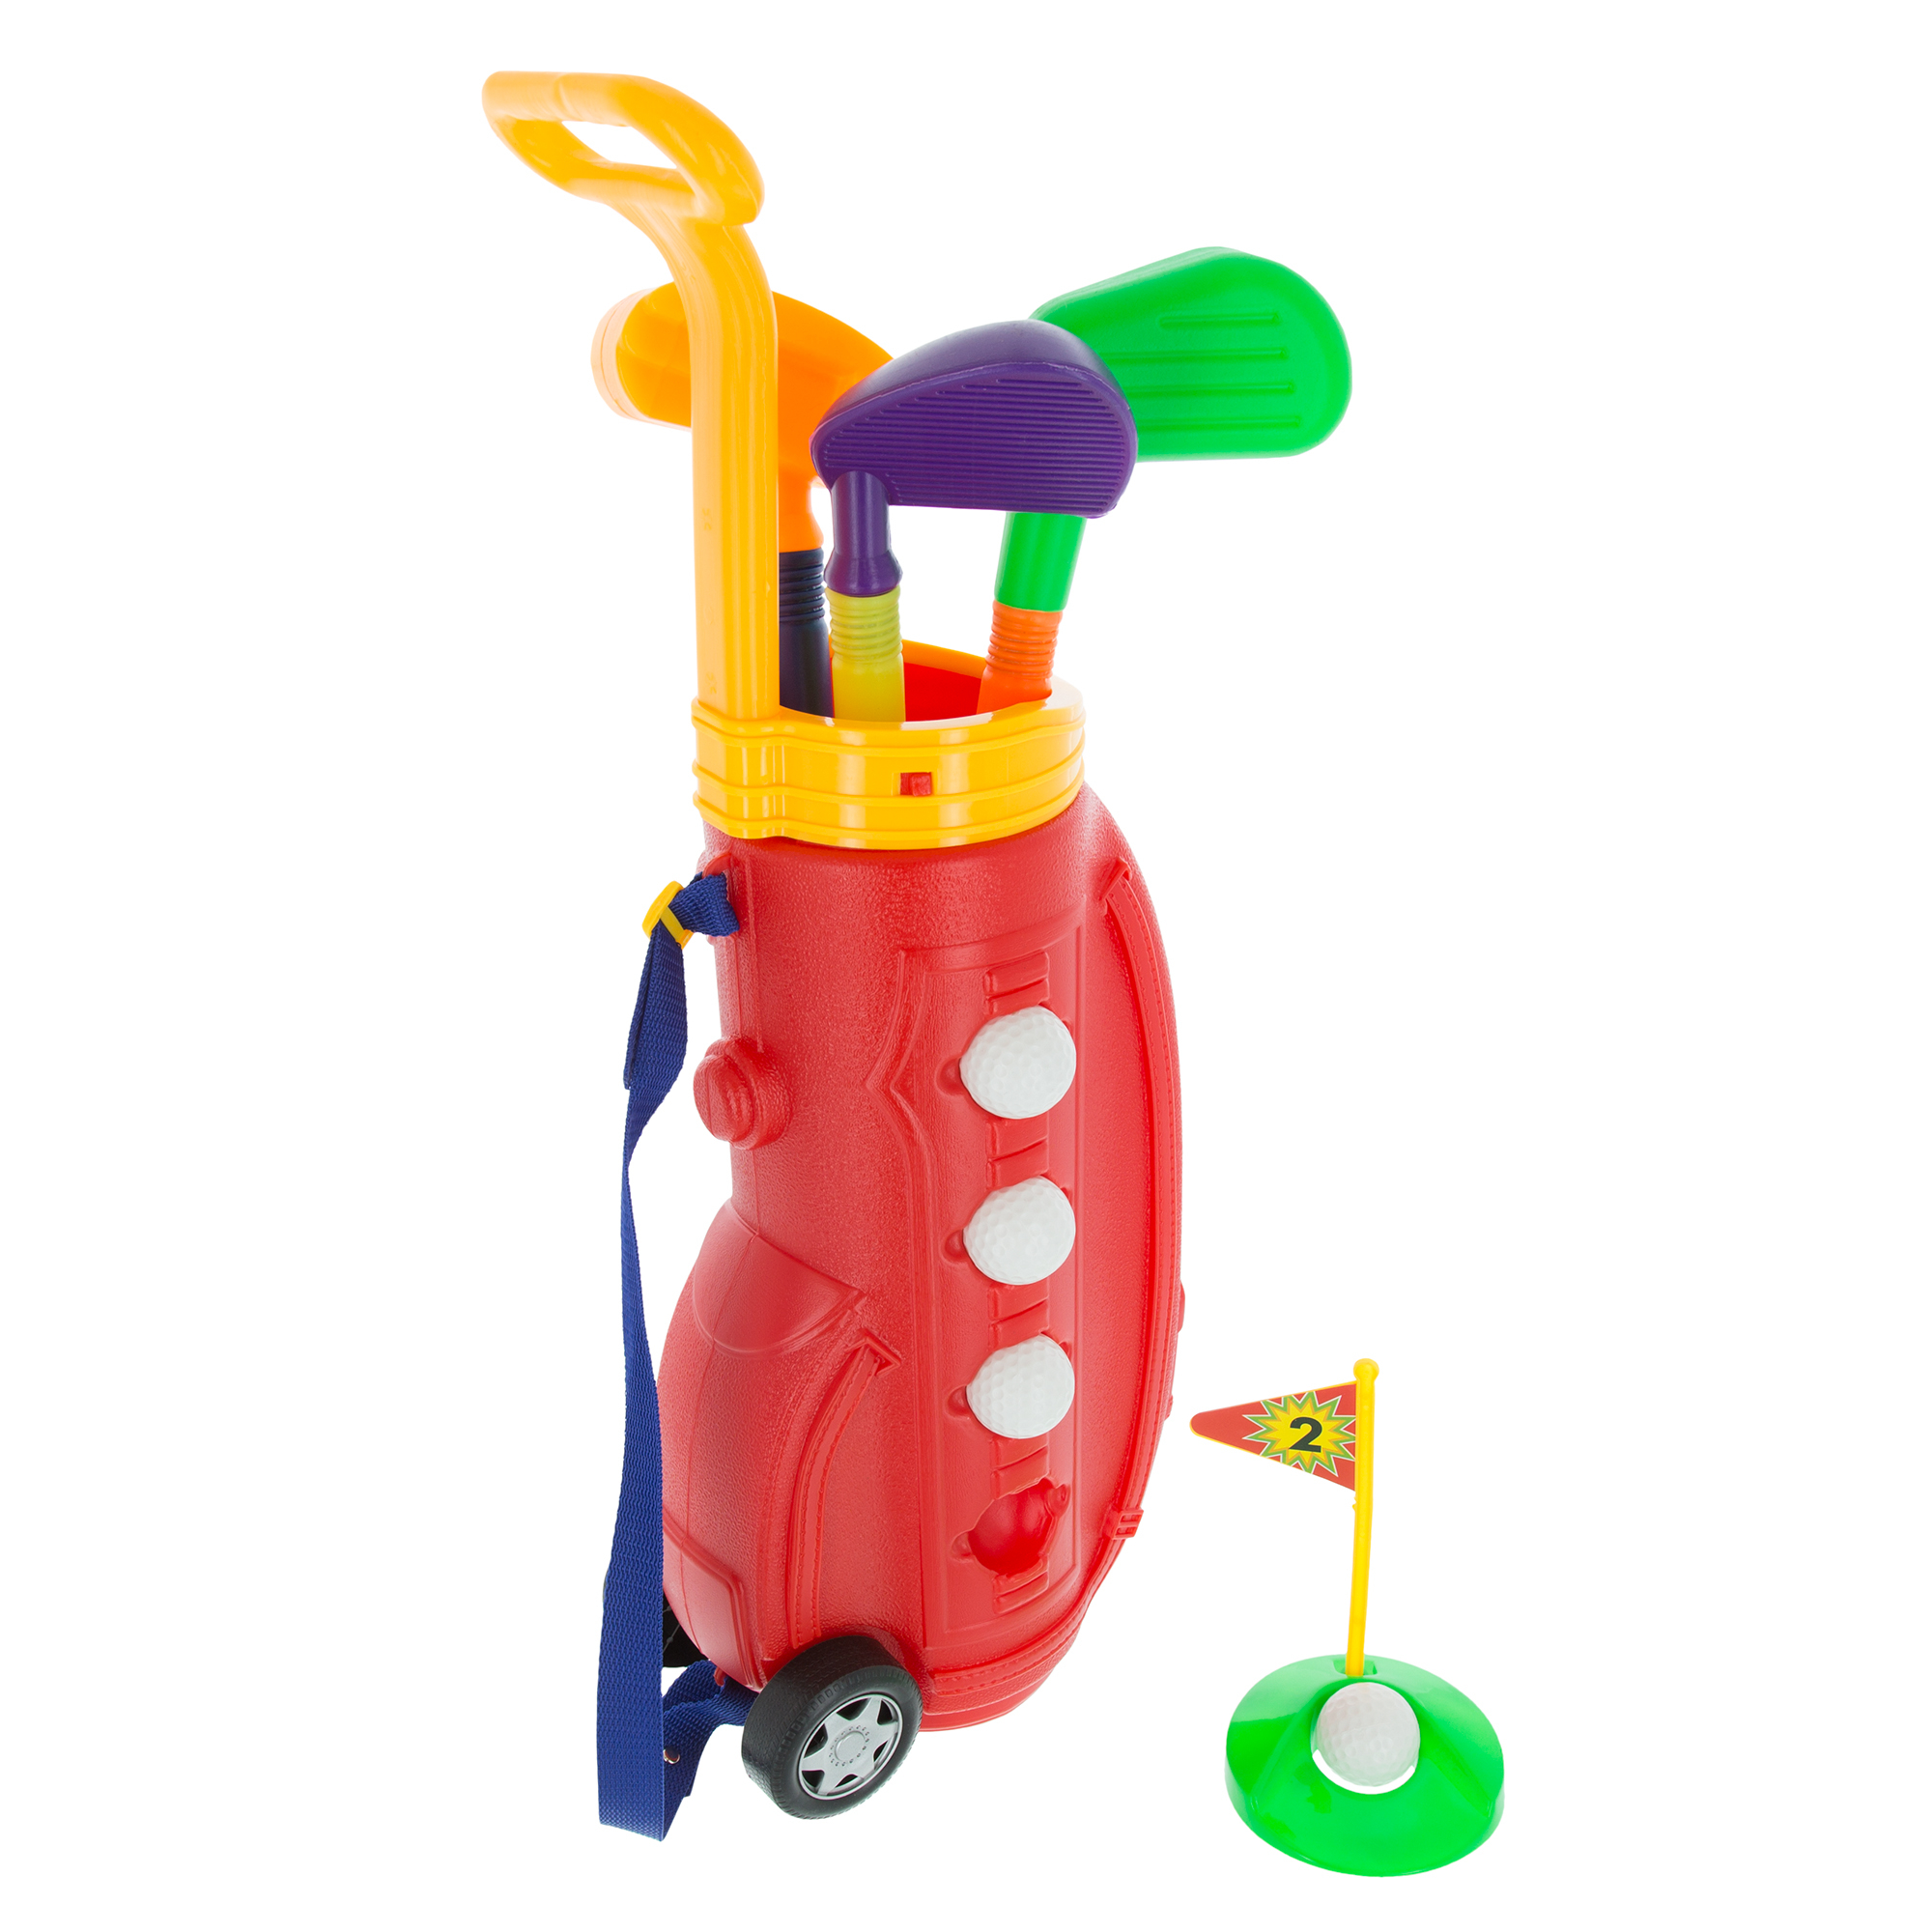 Toddler Toy Golf Club Play Set with Plastic Bag Wheels Clubs Putter Balls